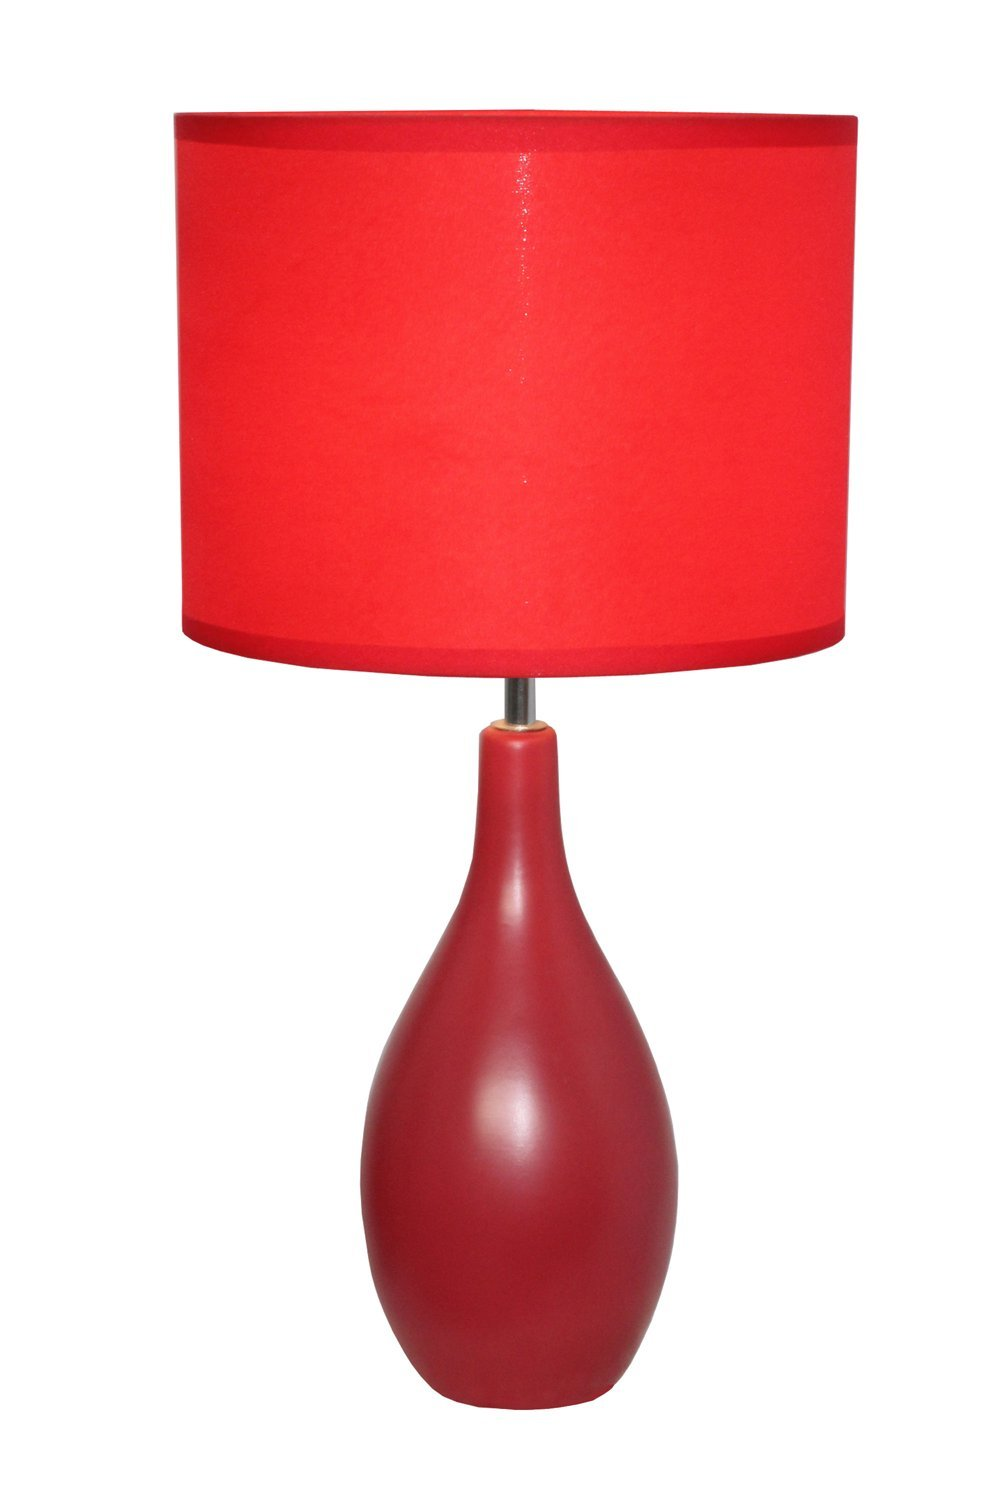 Simple Designs LT2002 RED Oval Bowling Pin Base Ceramic Table Lamp, Red   Red  Ceramic Lamp International   Amazon.com